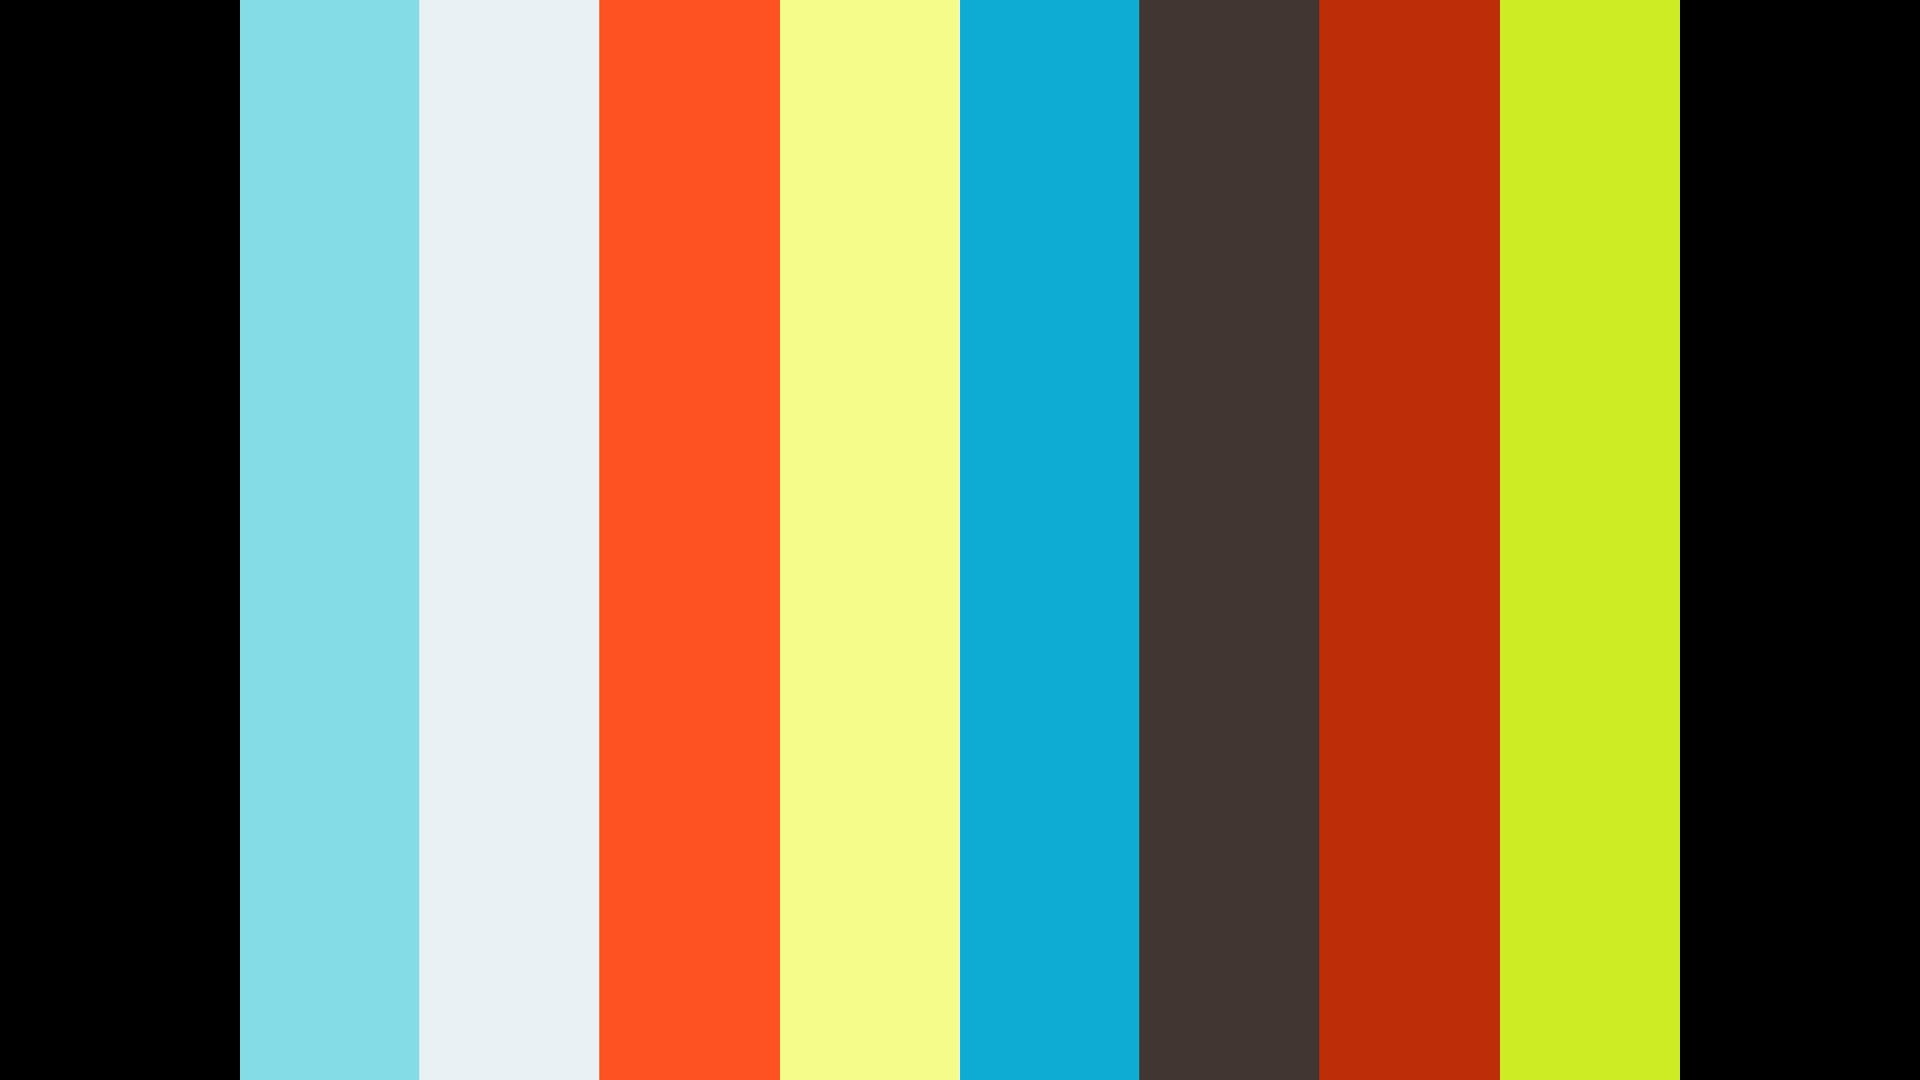 Interview: Dr Rosie Freedman, PhD, Health Psychologist